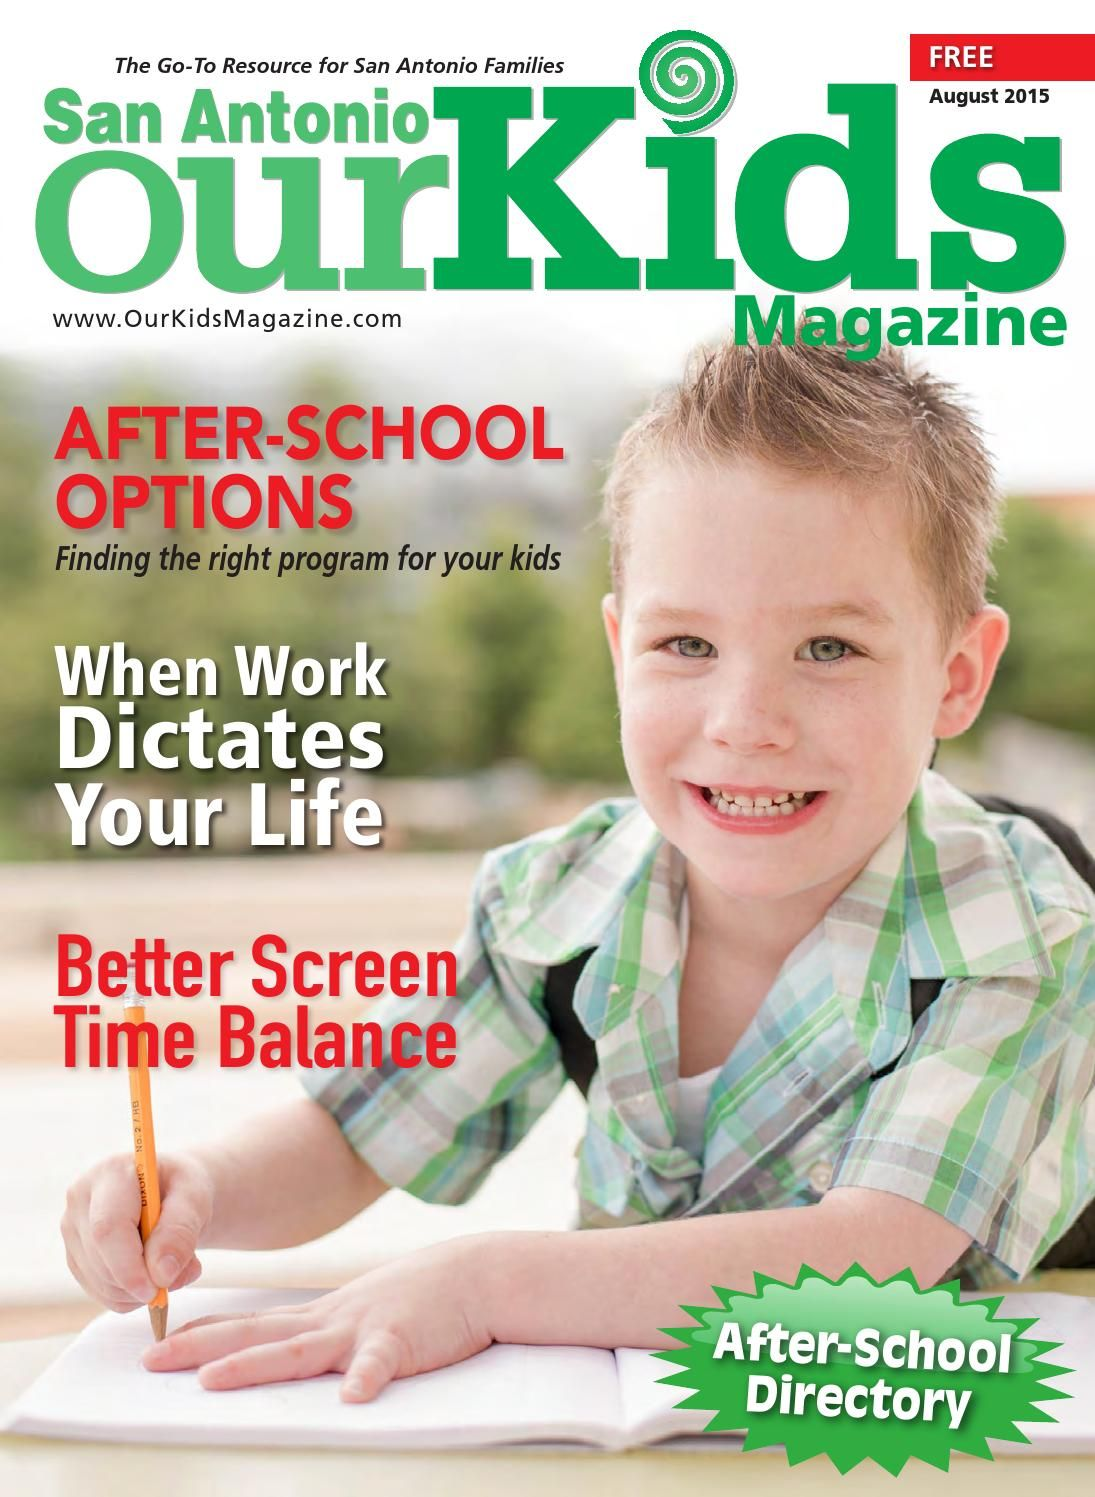 Our Kids Magazine August 2015